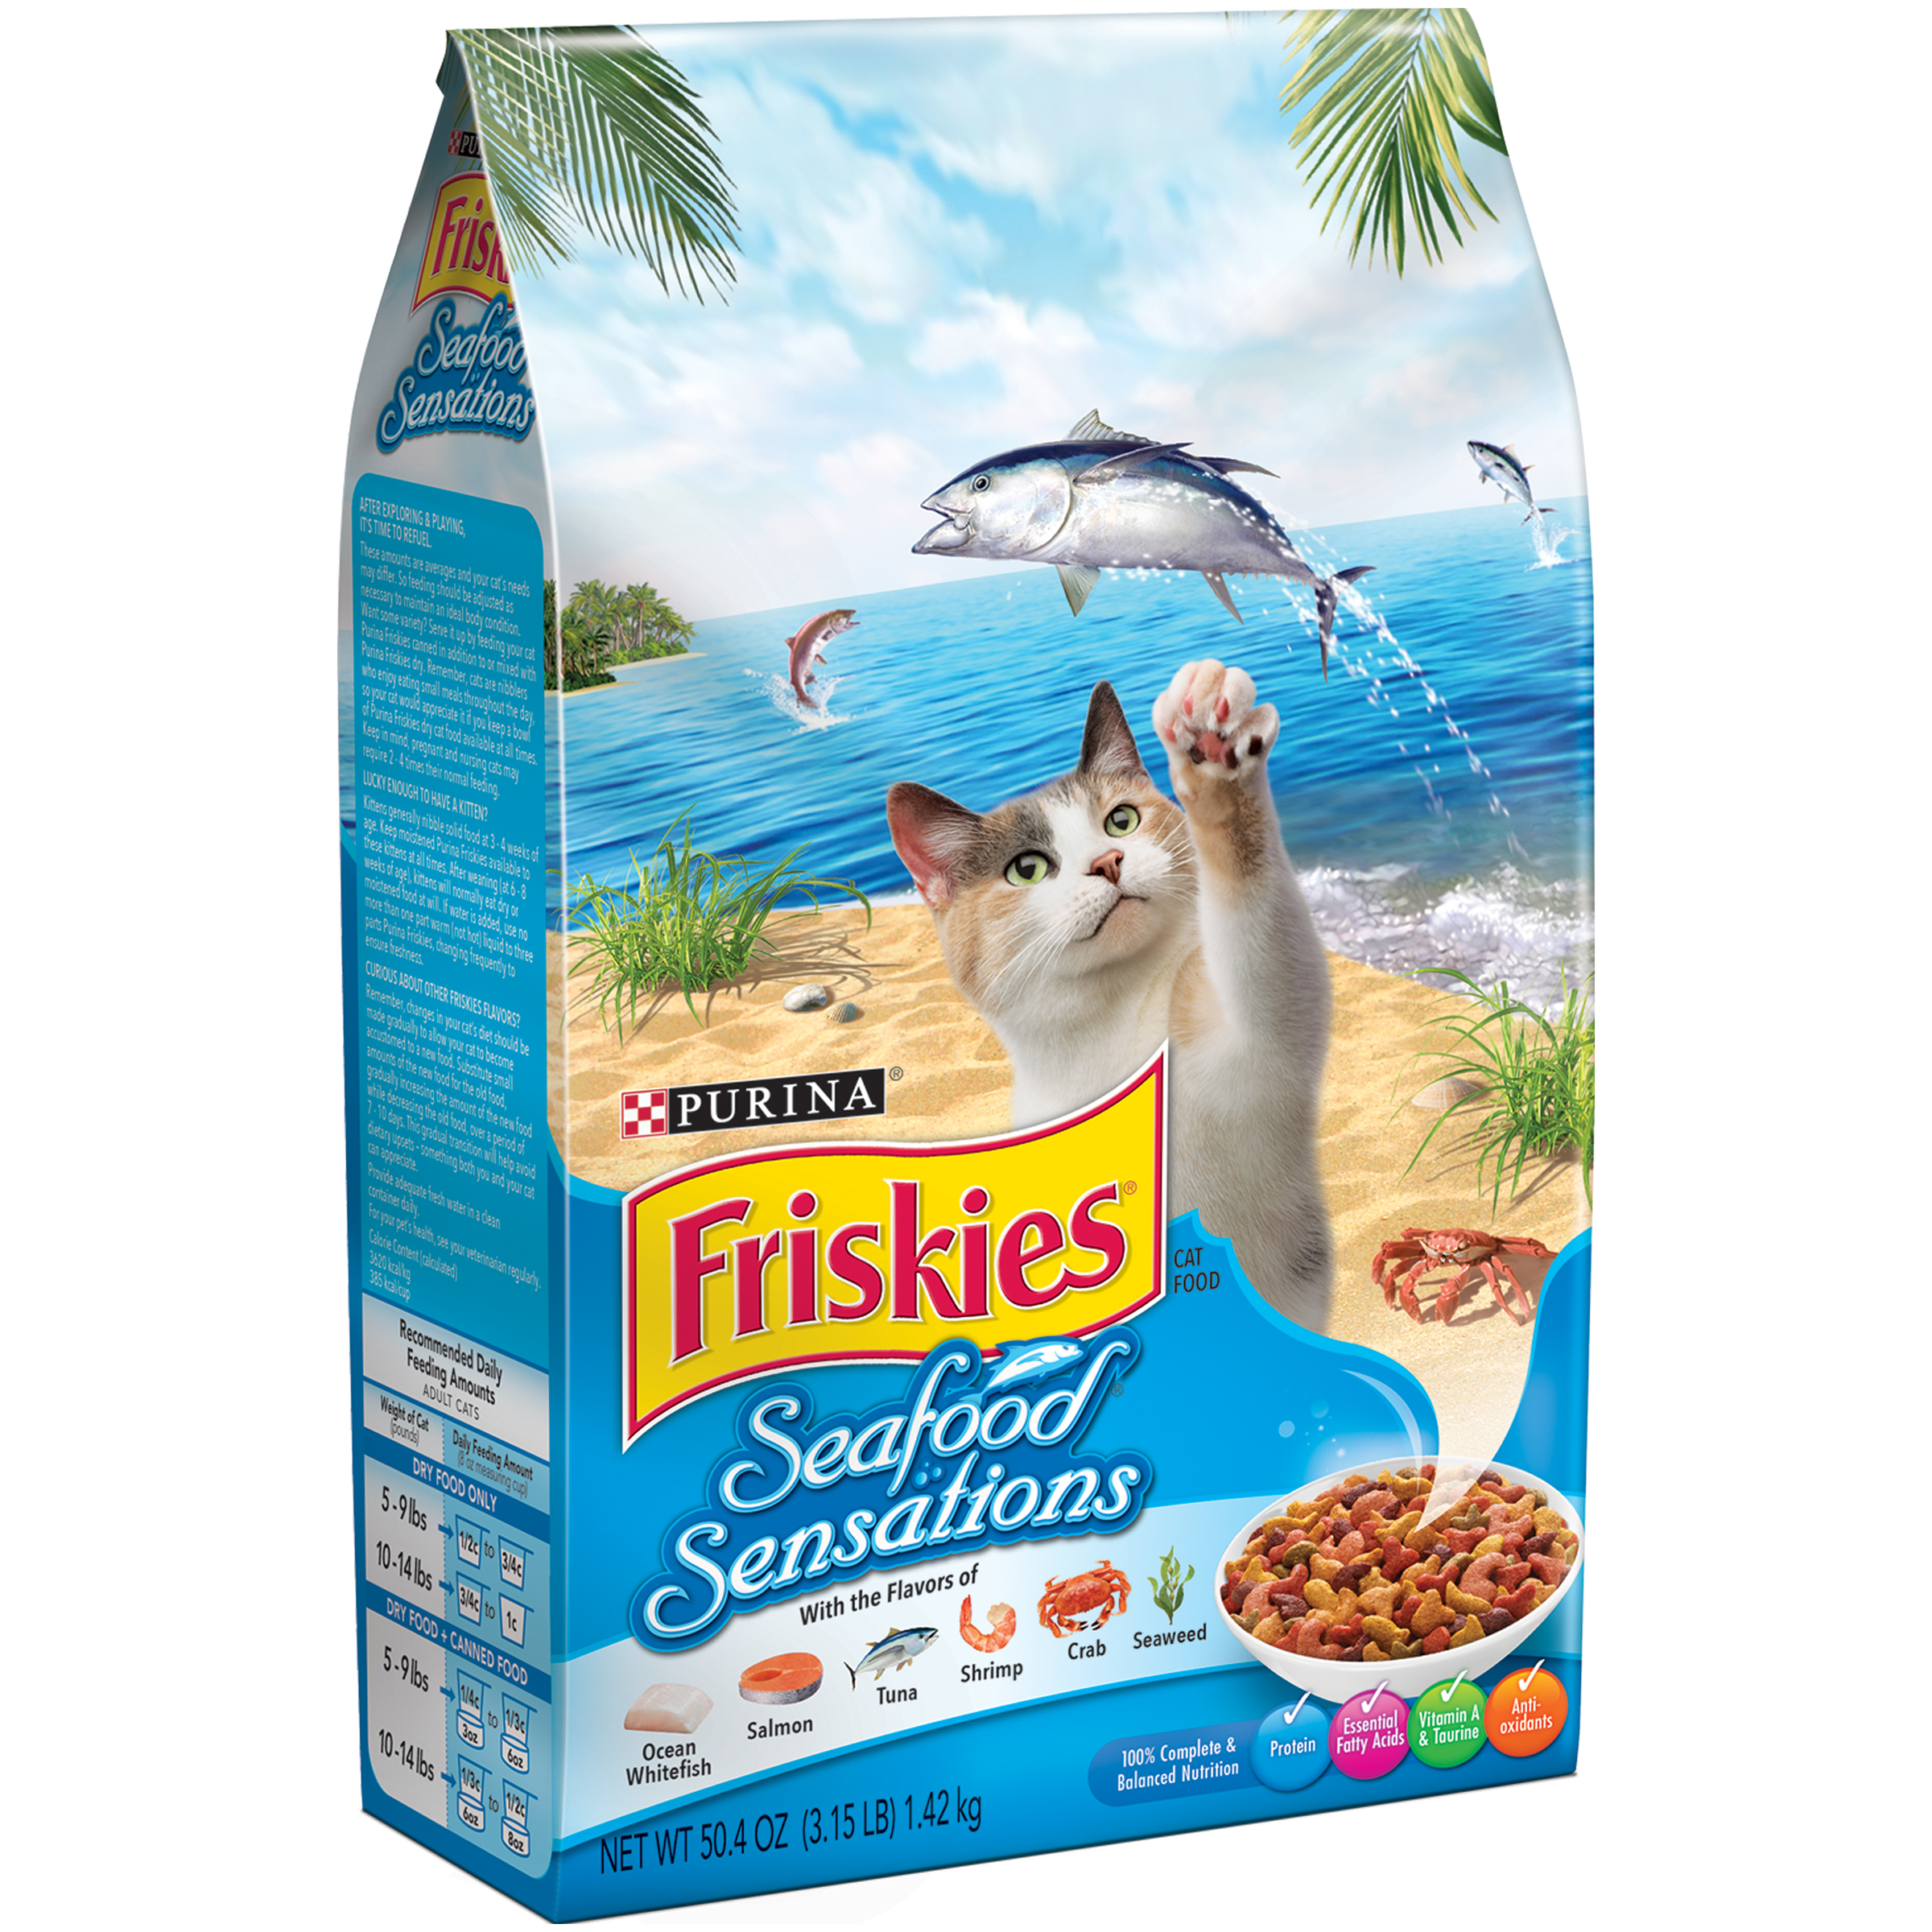 Purina Friskies Seafood Sensations Cat Food 3.15 lb. Bag